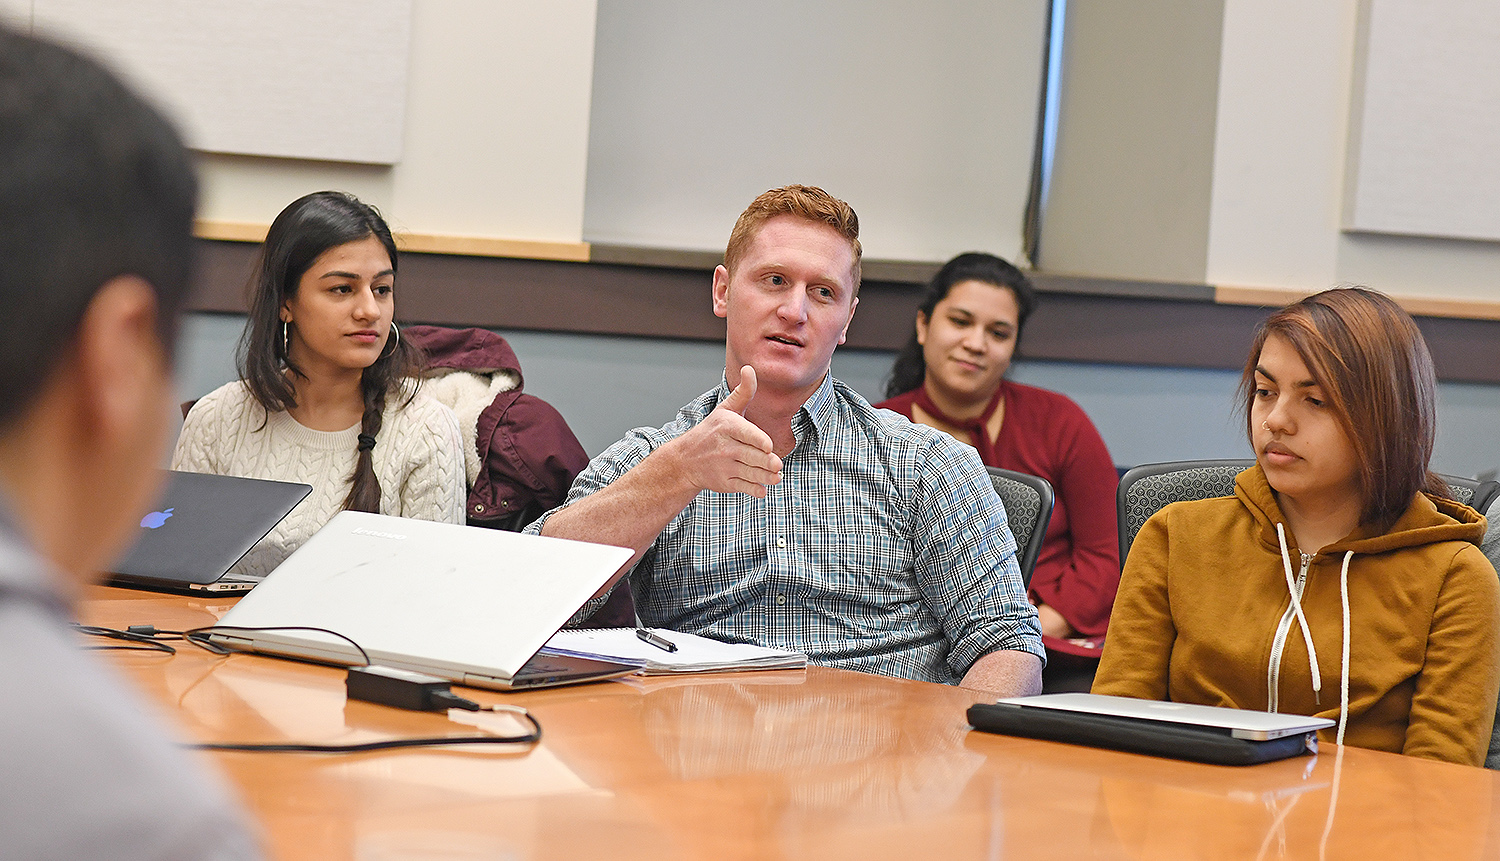 Wesleyan Posse Fellow Lance Williams '20 speaks about his role with the Wesleyan Design Tank, which uses human-centered design methodologies to facilitate problem-solving locally. Sankriti Malik '20, at left, also is involved with the Design Tank. Pictured in back is Rhea Drozdenko '18, the 2017/2018 Civic Engagement Fellow, and at right is Kelly Acevedo '20 who is creating Caput Productions through the Patricelli Center.